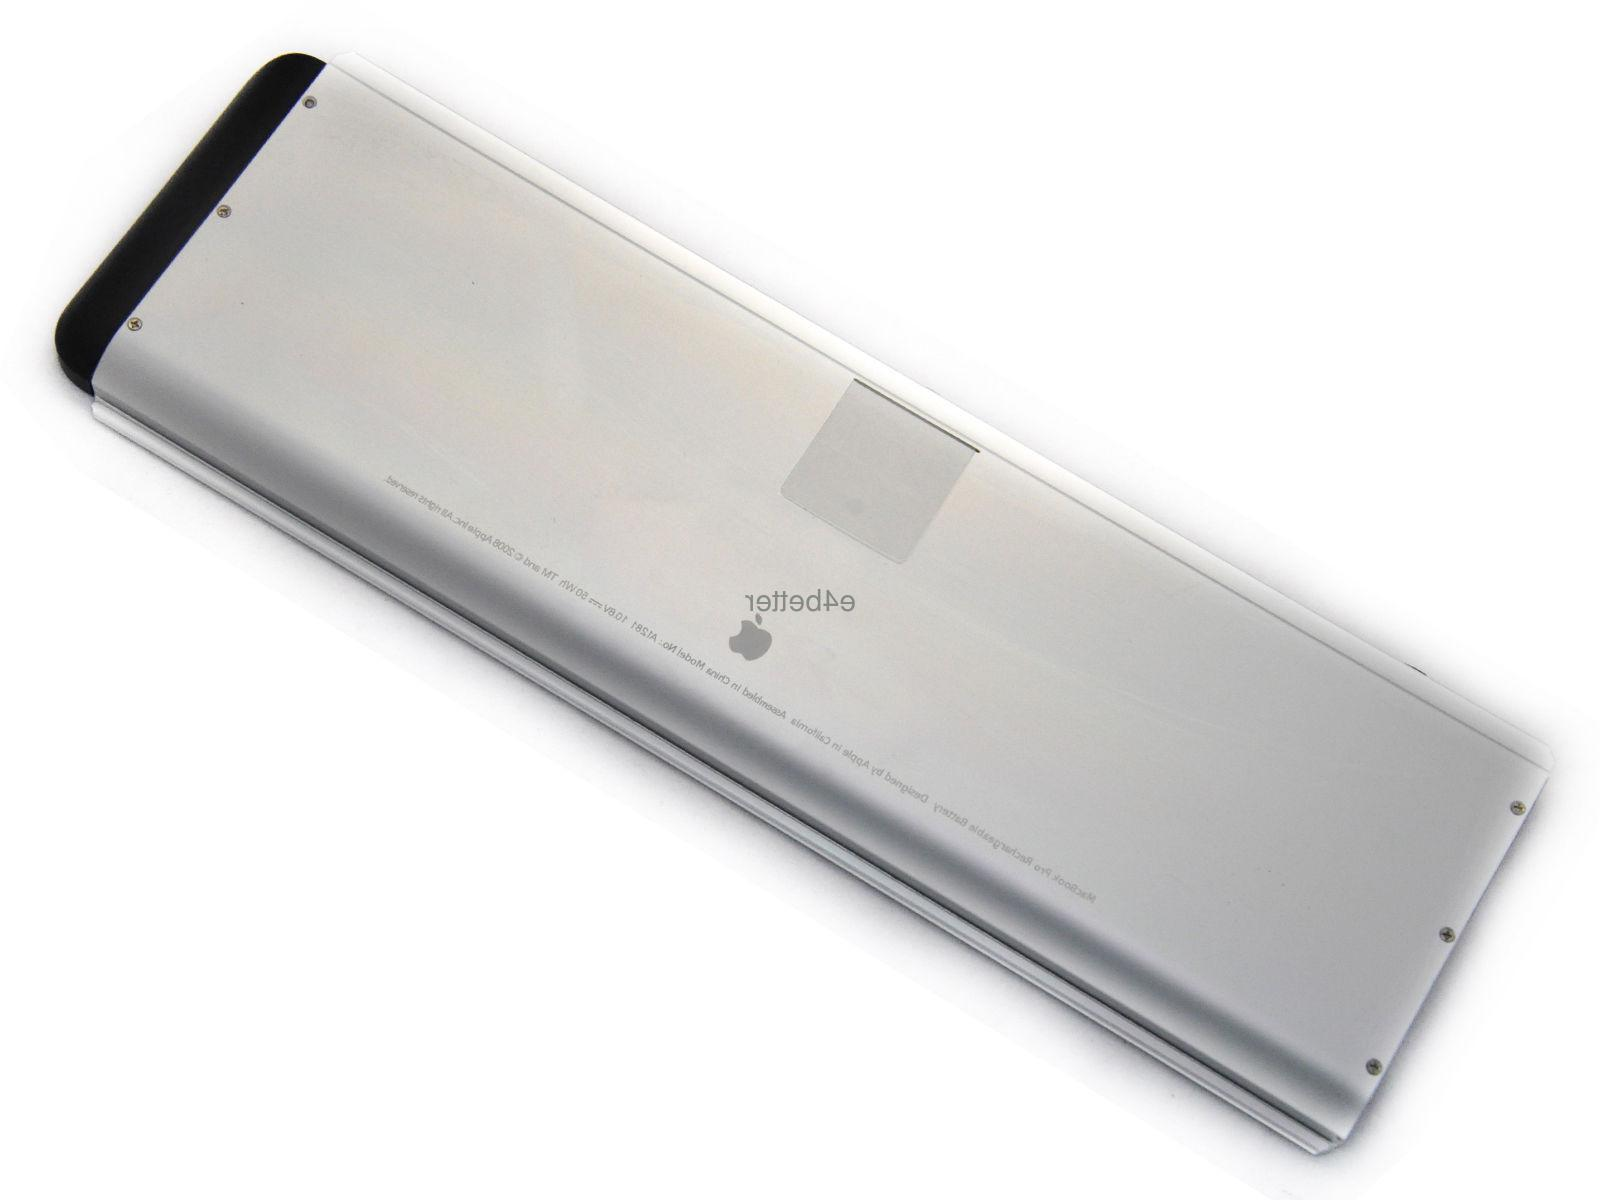 50Wh Genuine 15-Inch Apple MacBook Battery A1281 MB772LL/A 6